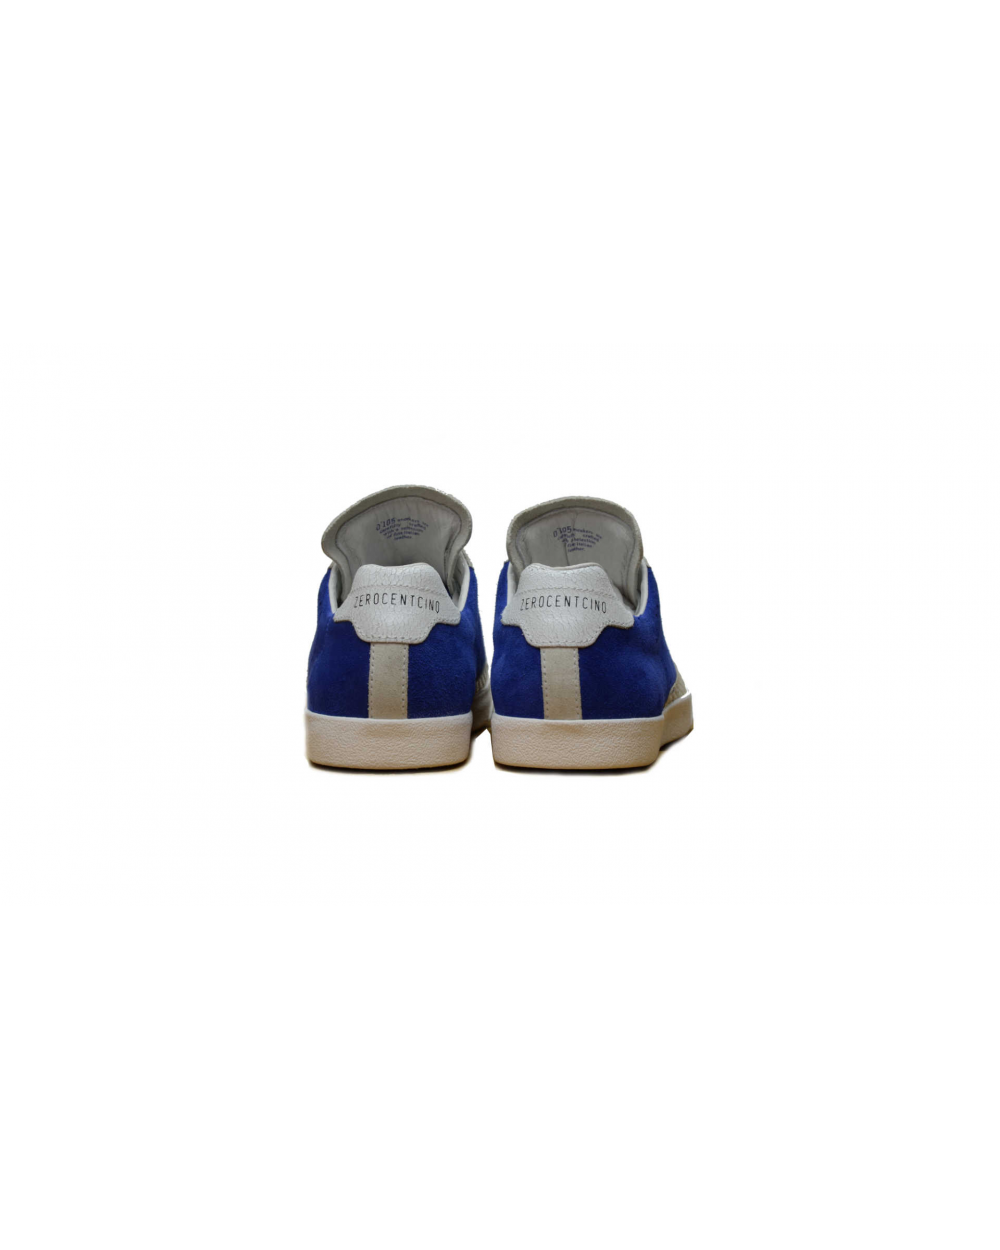 Stan chris suede electric blue